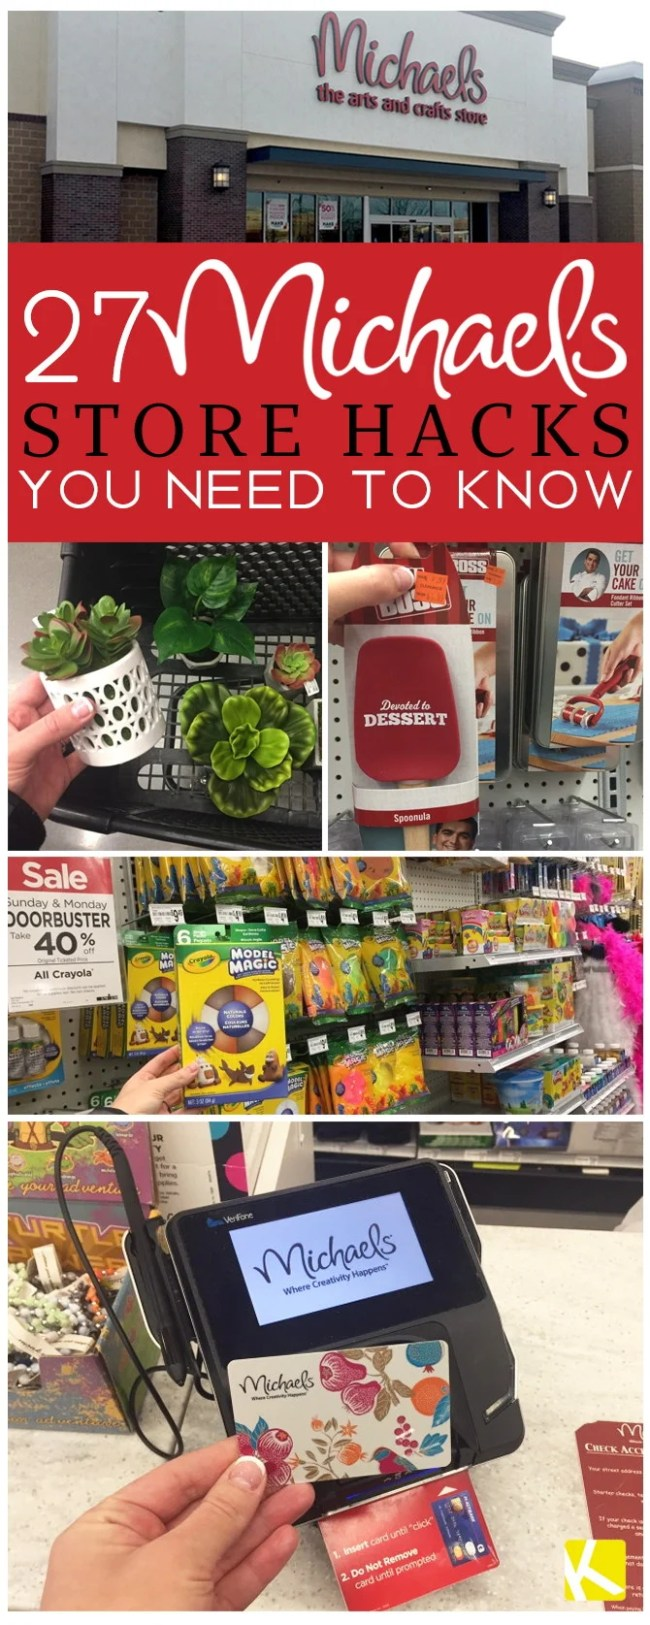 These 10 Lists Will Save You So Much Money At The Stores. Thank you Krazy Coupon Lady for being a GENIUS!